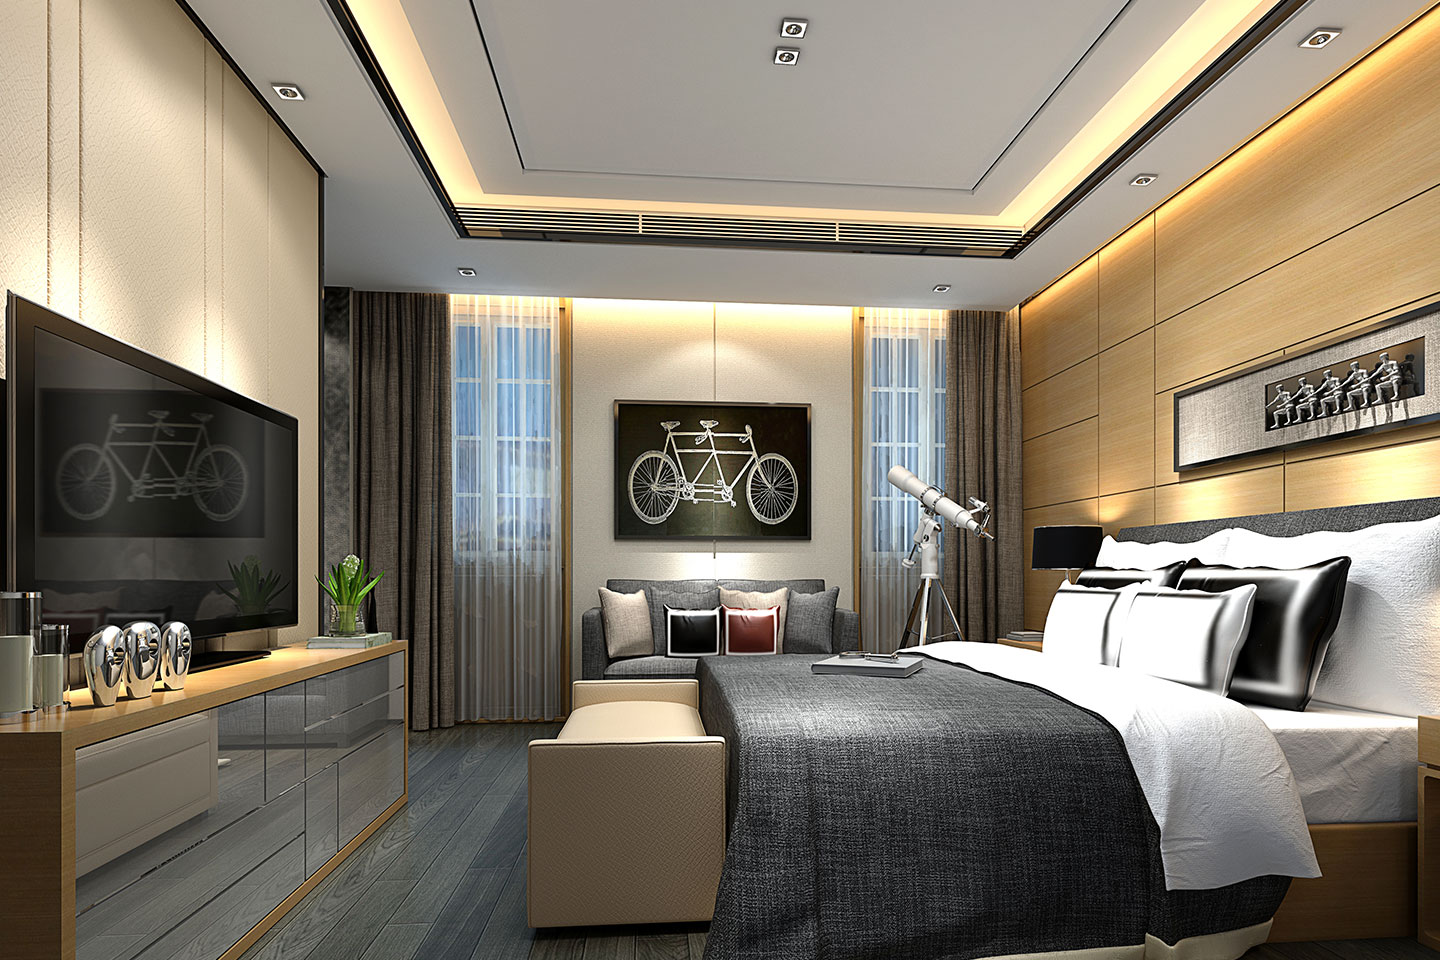 1440x960-Hospitality-trends-online